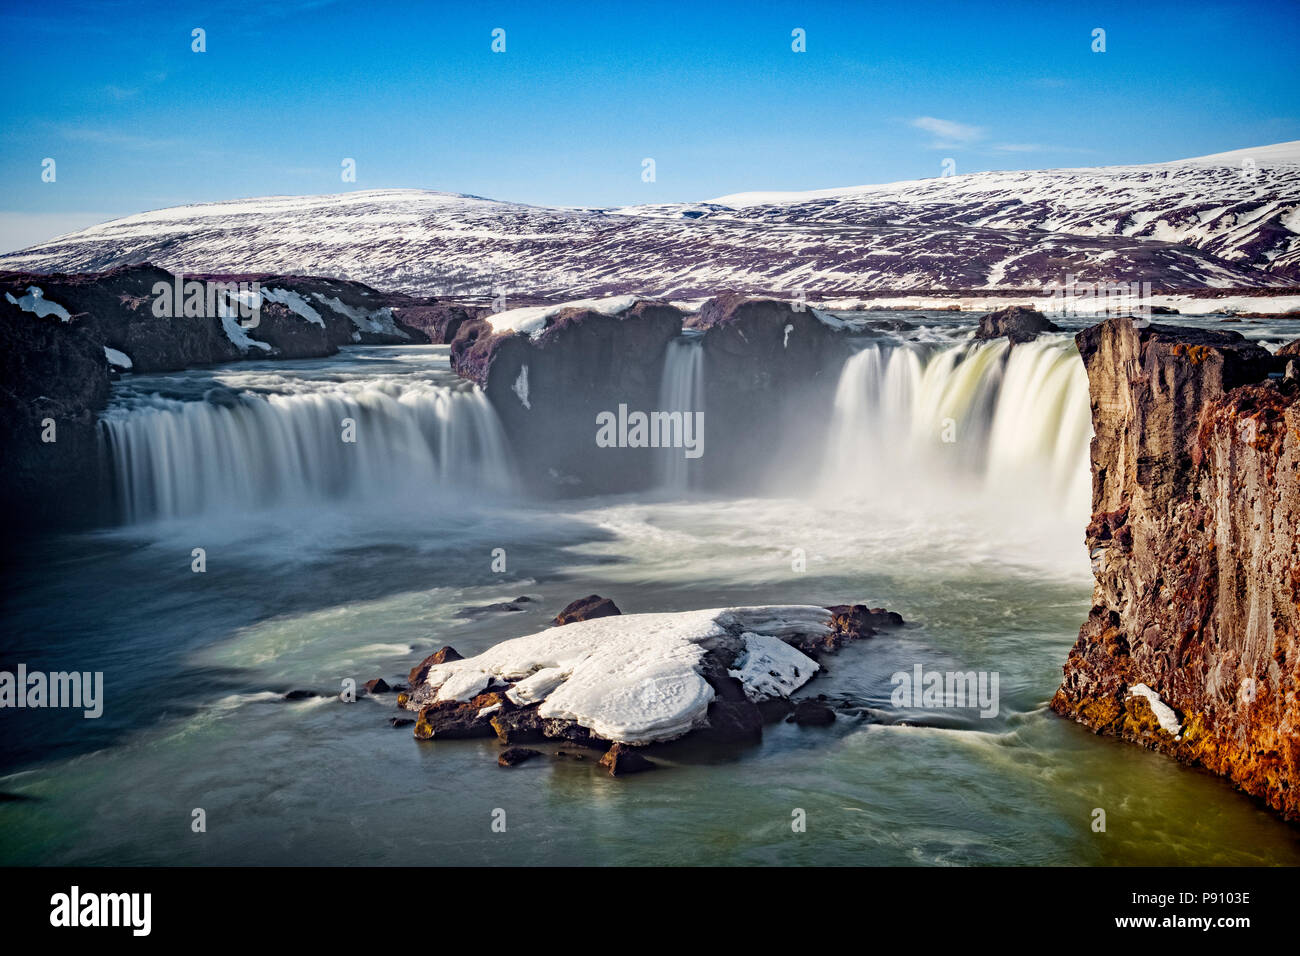 Godafoss, the Waterfall of the Gods, a major tourist attraction in Iceland. - Stock Image